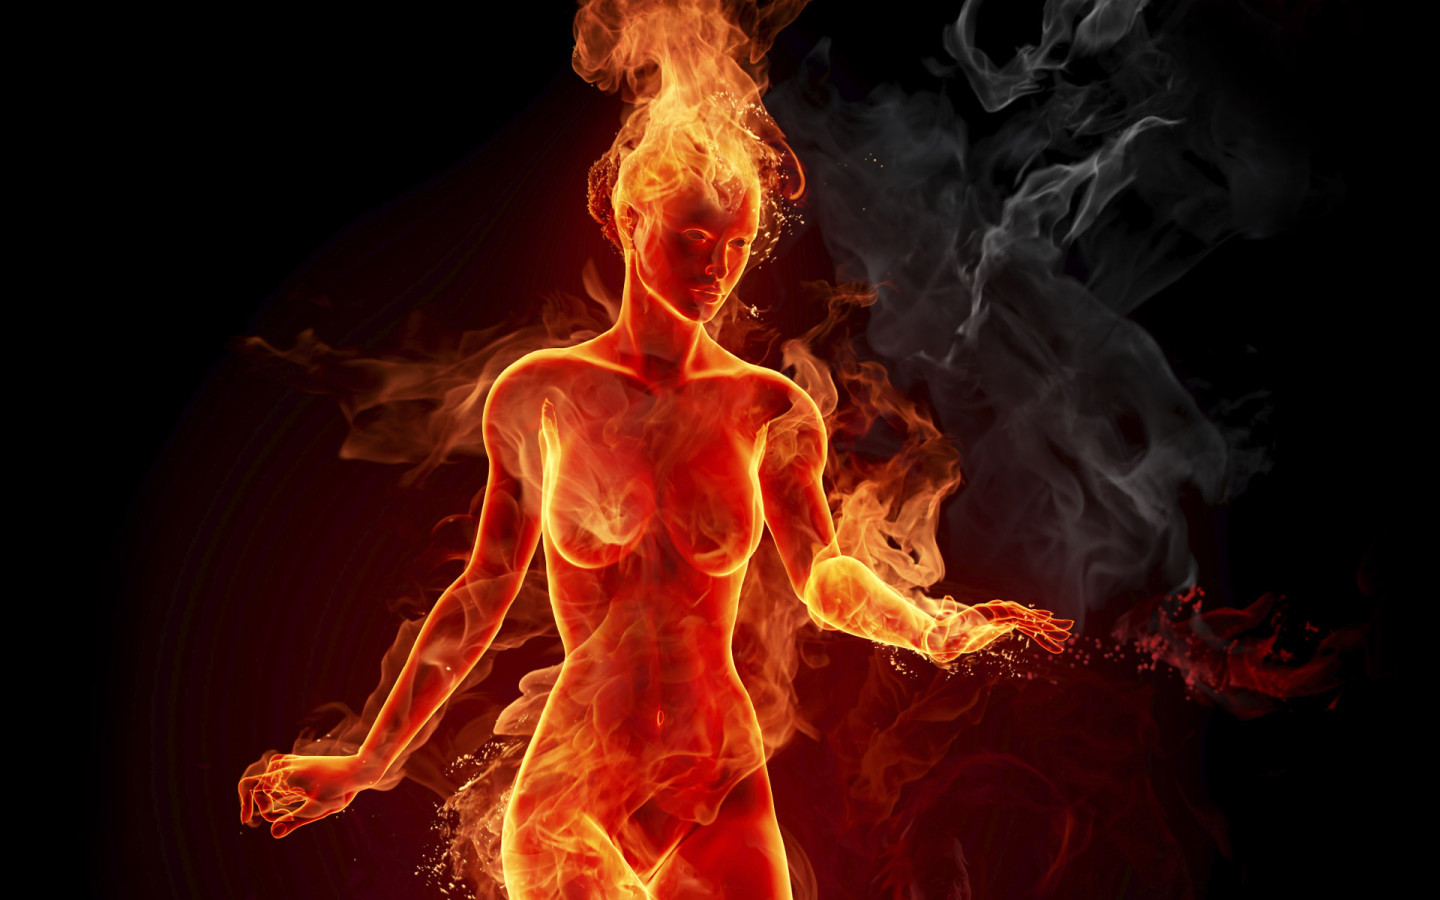 Fire Burning Girl Wallpaper